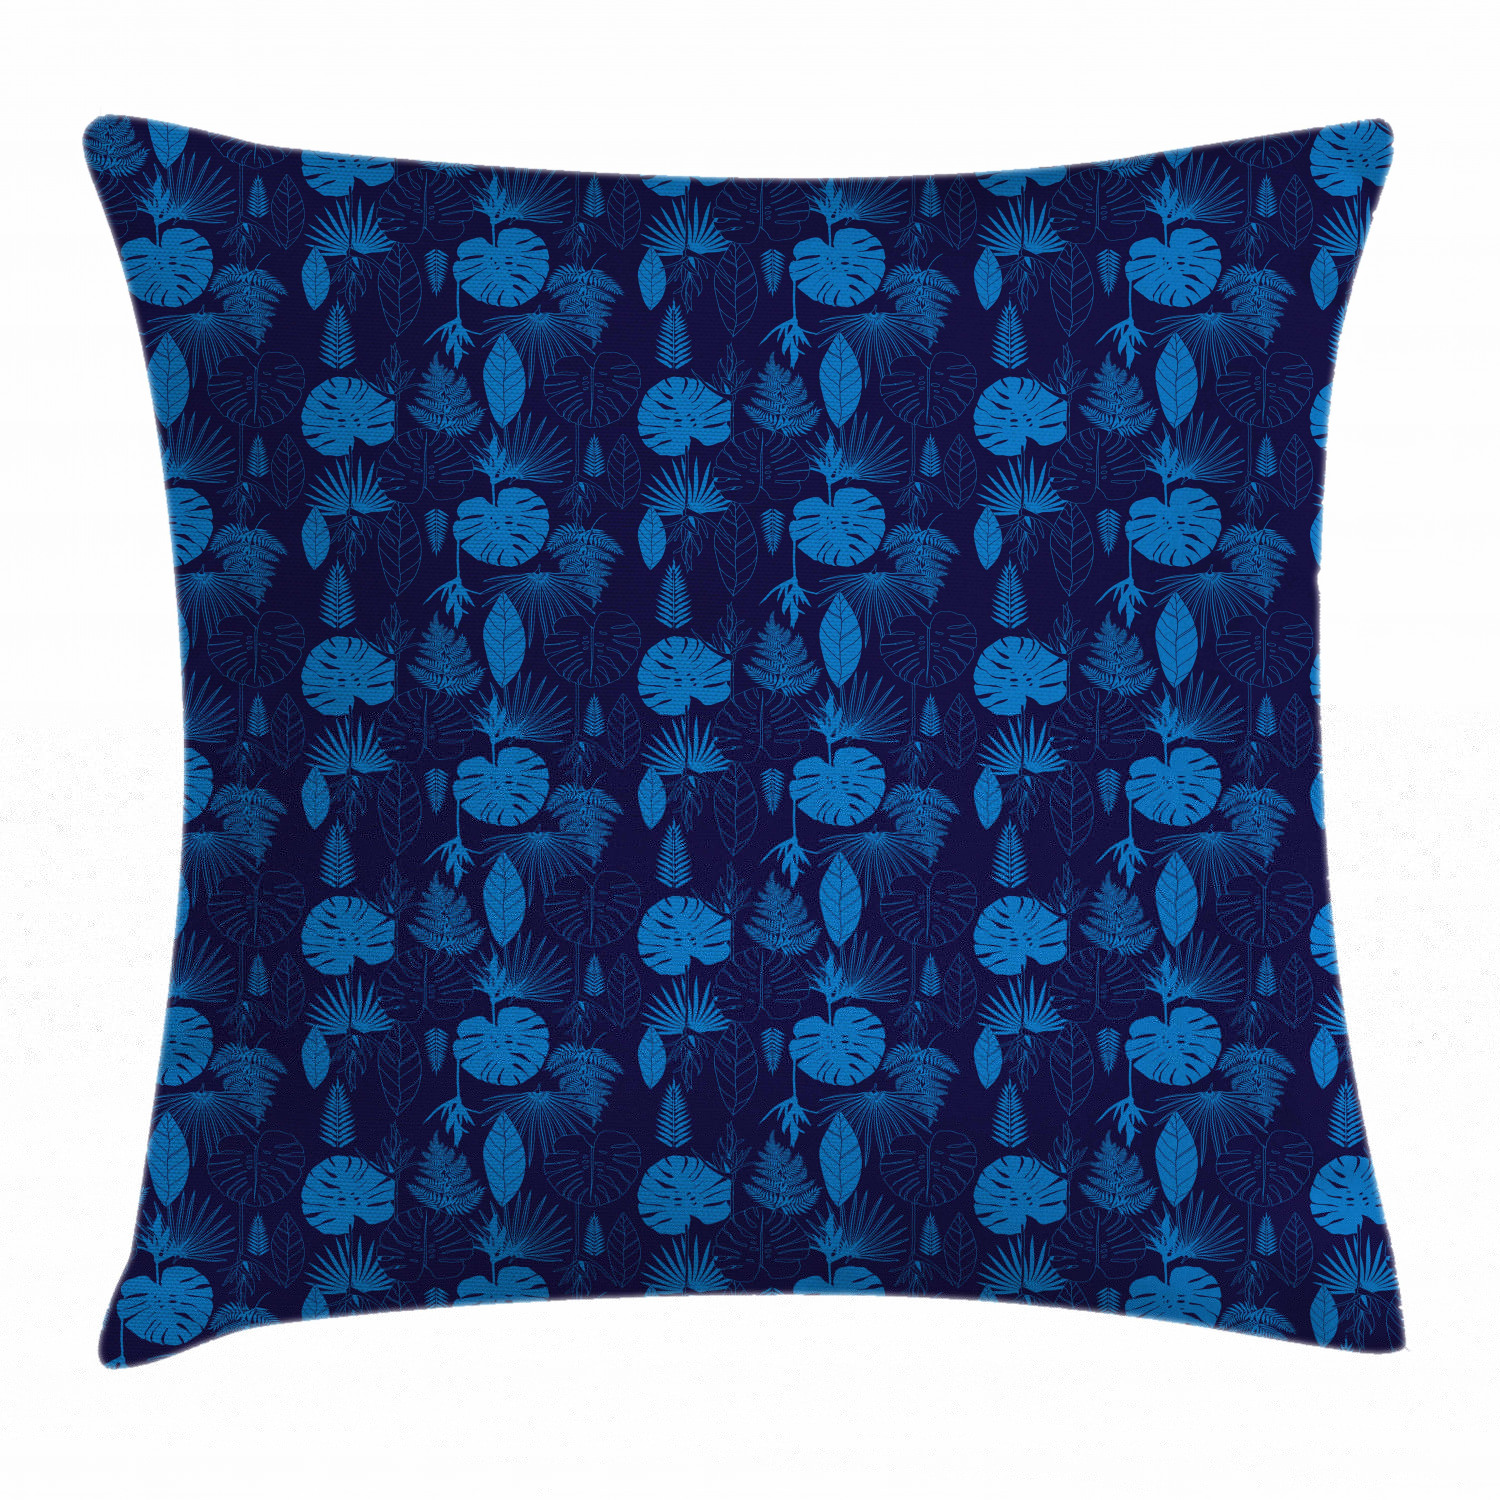 Exotic Throw Pillow Cushion Cover, Artsy Tropical Plants Palm Tree Leaves Jungle Leafage Botanical Hawaii Theme, Decorative Square Accent Pillow Case, 24 X 24 Inches, Cobalt Blue Indigo, by Ambesonne ()